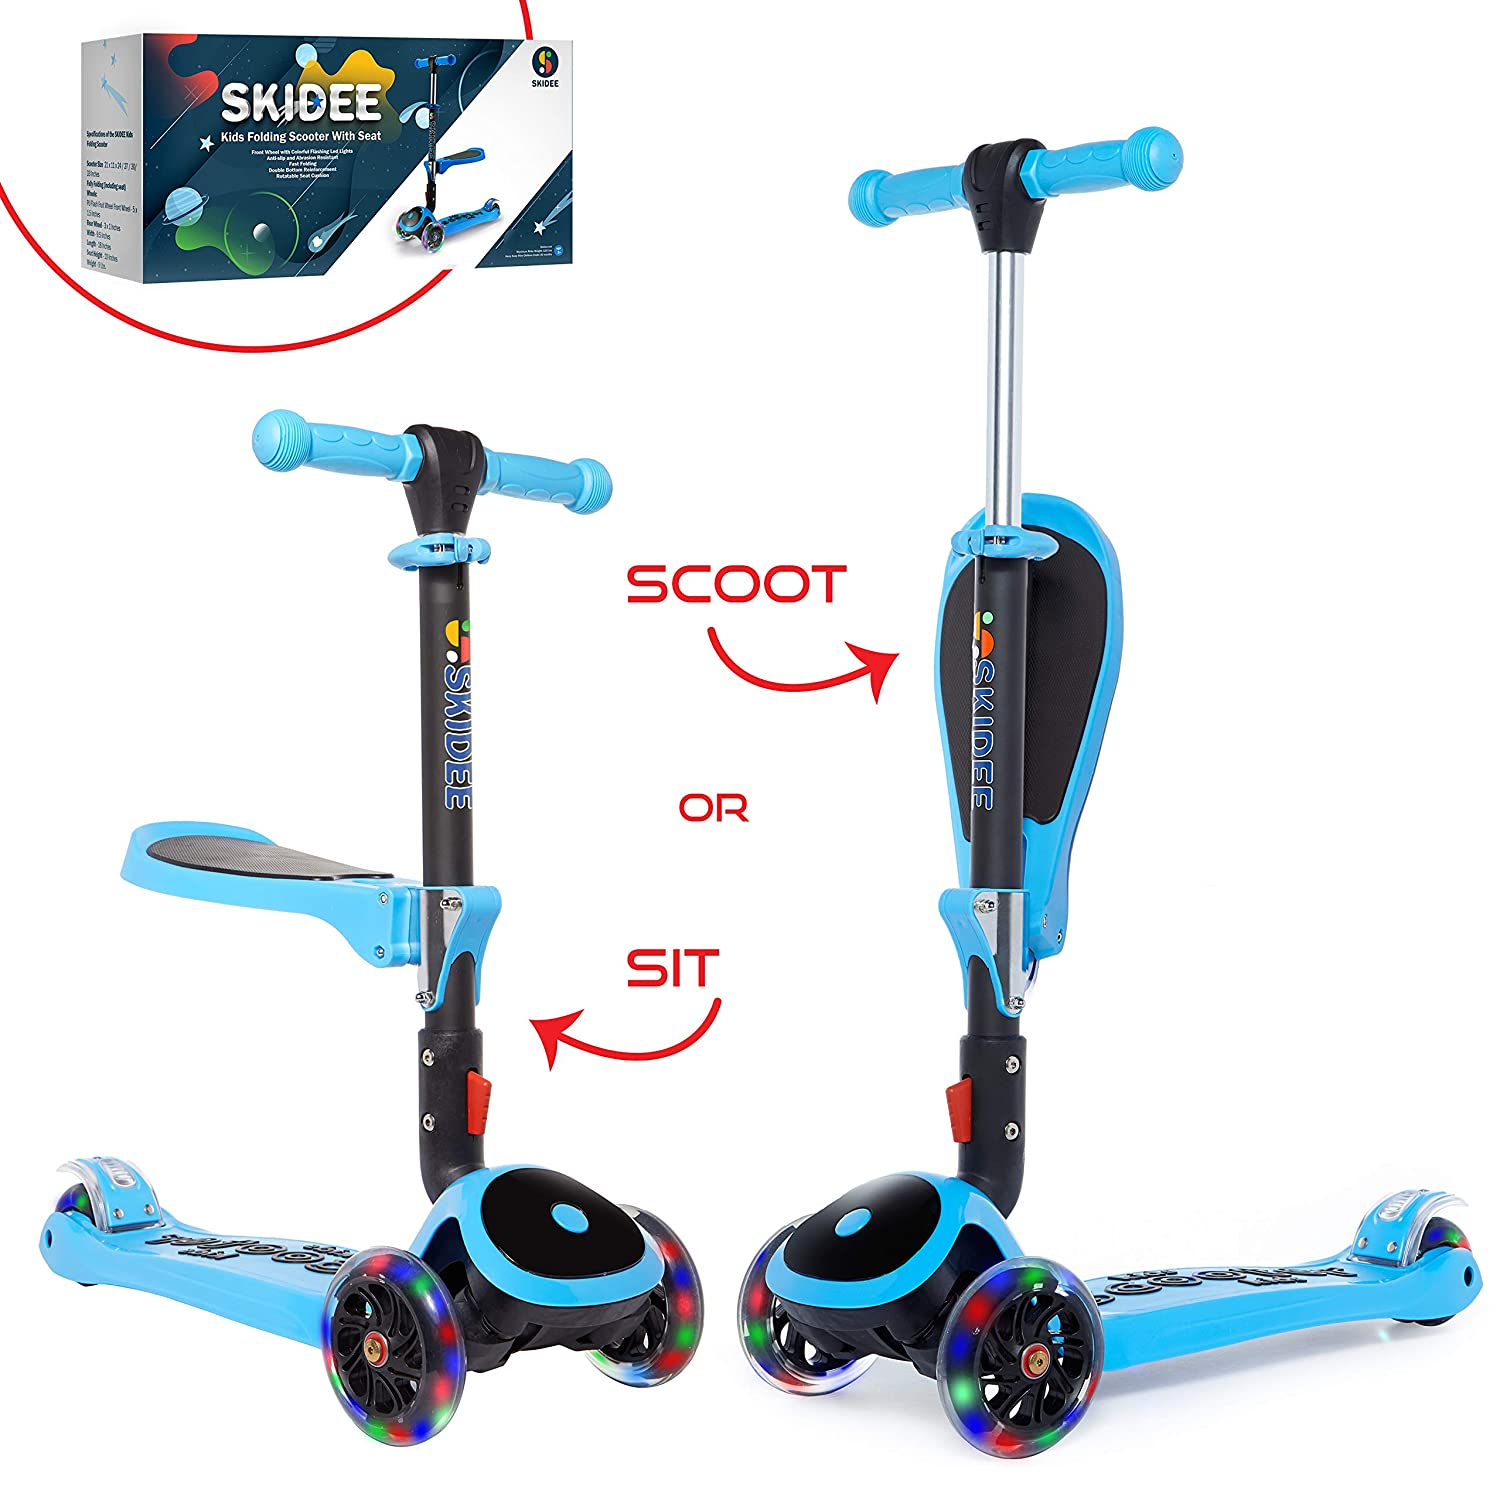 Scooter for Kids with Folding Seat – New 2 in 1 Adjustable 3 Wheel Kick Scooter for Toddlers Girls Boys – Fun Outdoor Toys for Kids Fitness Outside Games Kid Activities – Boy Girl Toys – Y200